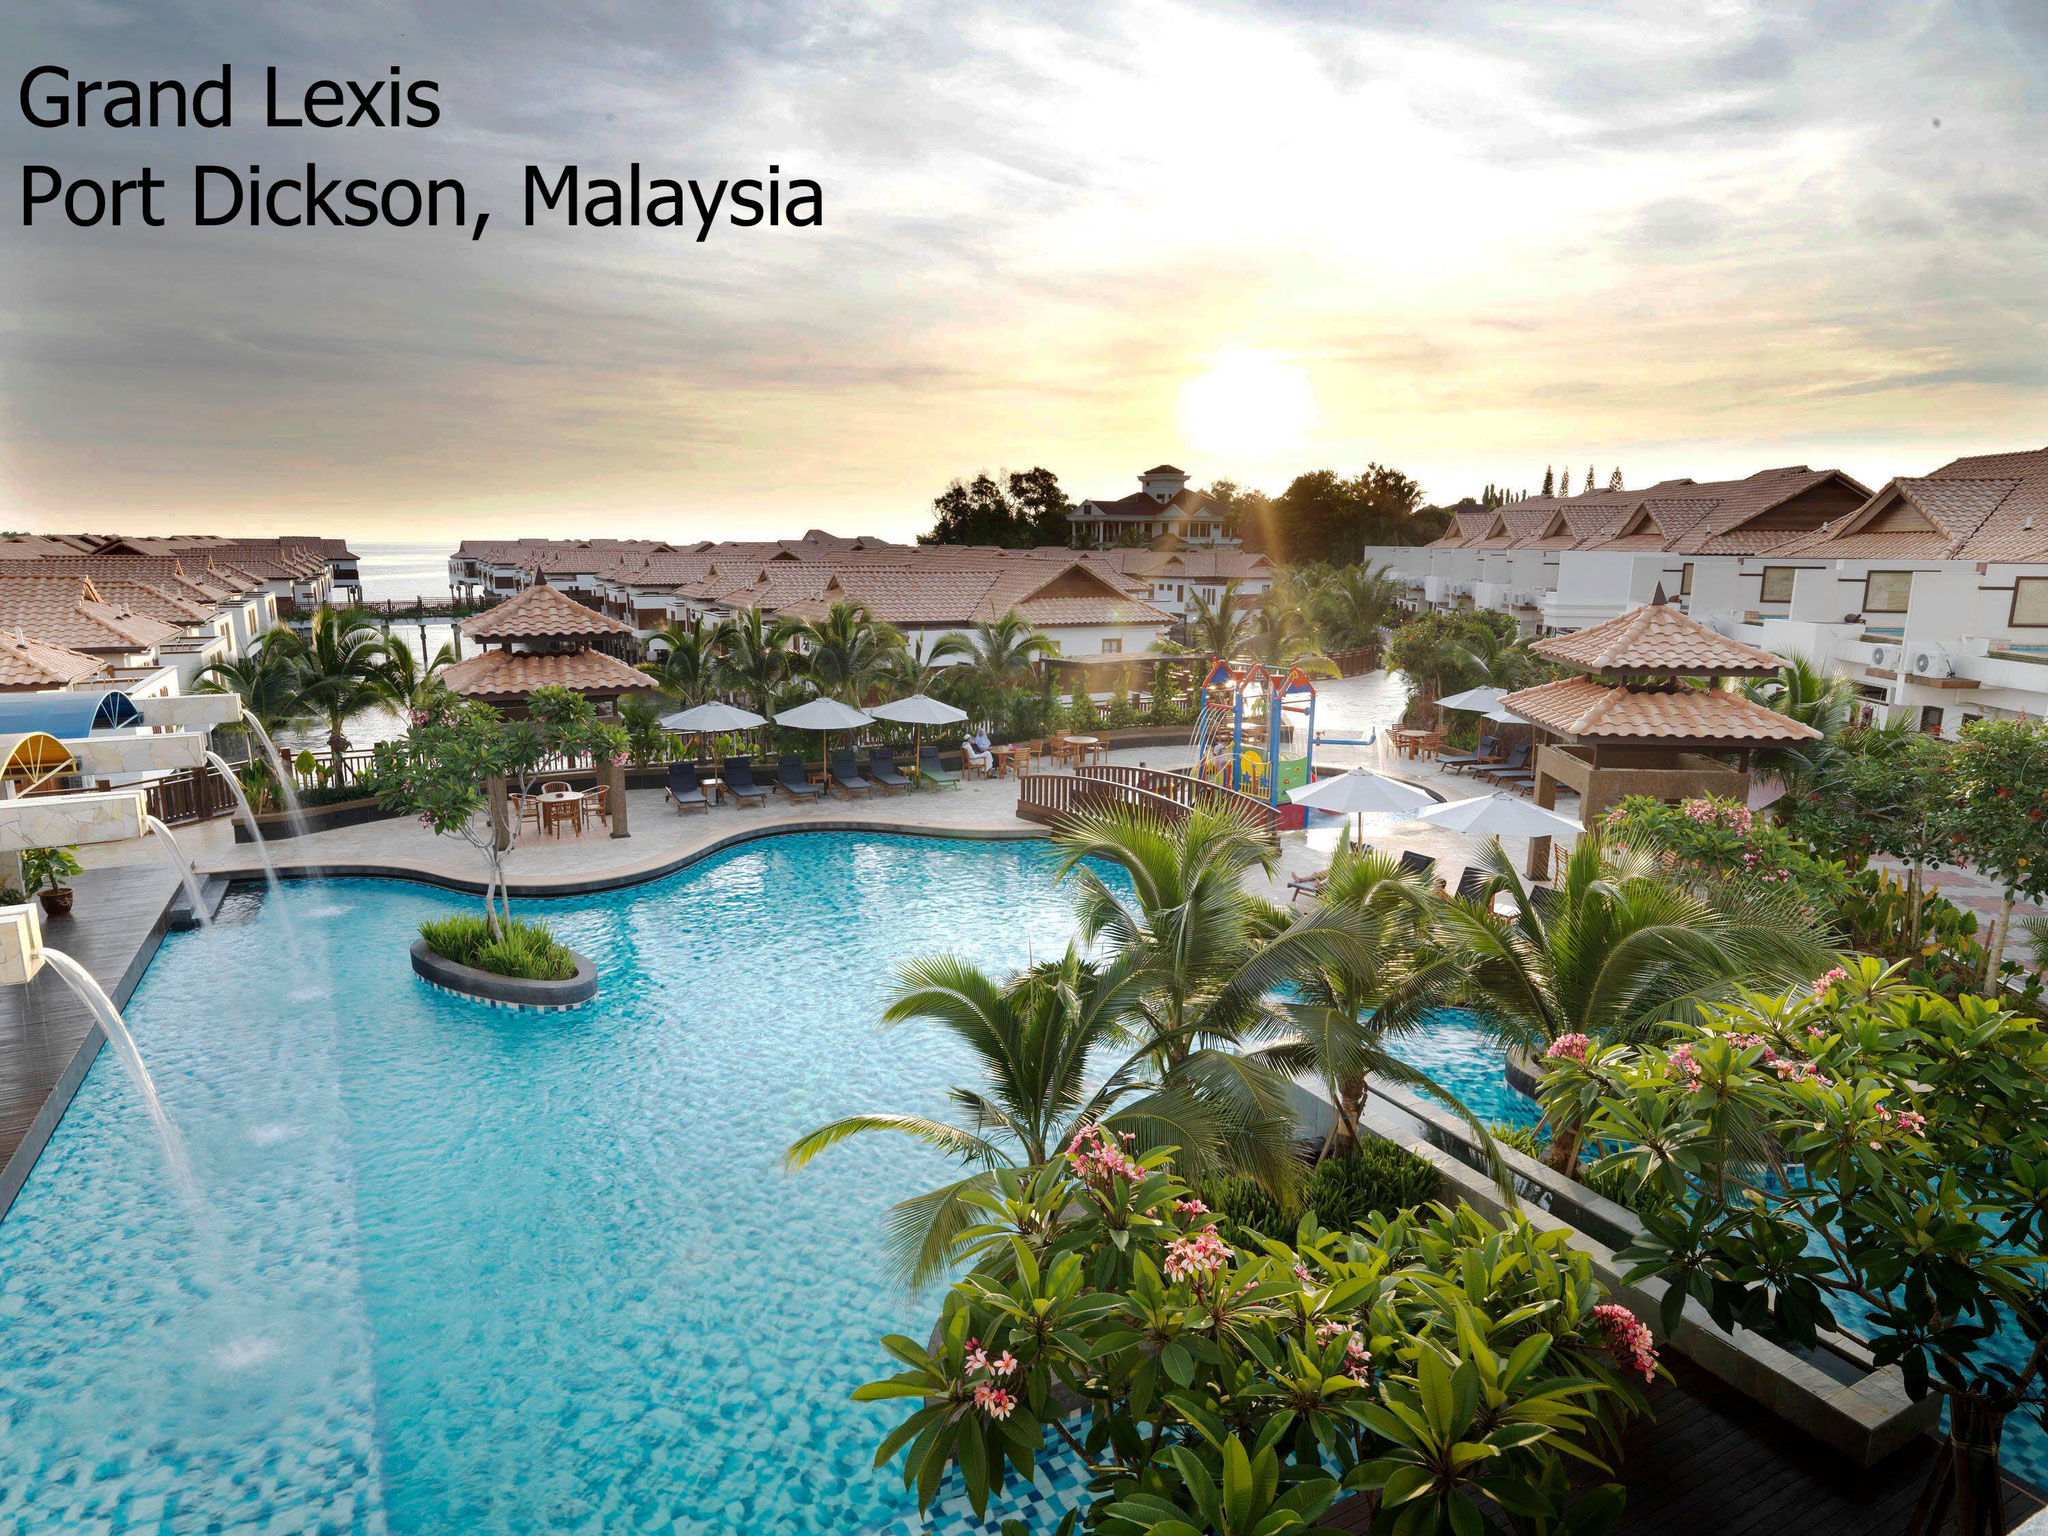 Lexis Hotel Group, KL Malaysia, Hotel Representation in Australia and New Zealand by GSA Hospitality